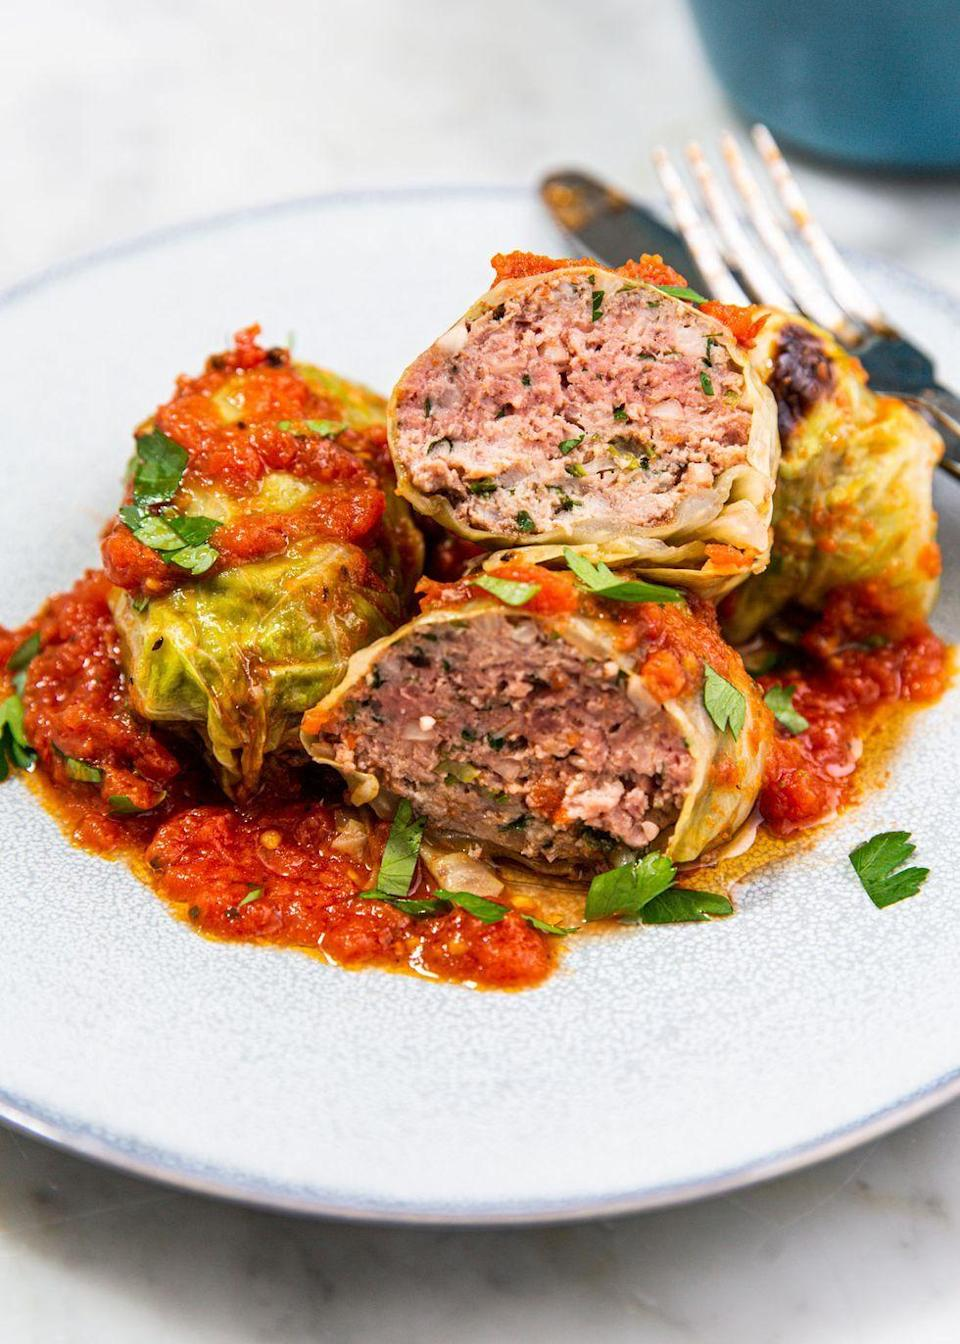 """<p>Low carb and incredibly flavorful!</p><p>Get the recipe from <a href=""""https://www.delish.com/cooking/recipe-ideas/a30779229/keto-stuffed-cabbage-recipe/"""" rel=""""nofollow noopener"""" target=""""_blank"""" data-ylk=""""slk:Delish."""" class=""""link rapid-noclick-resp"""">Delish. </a></p>"""